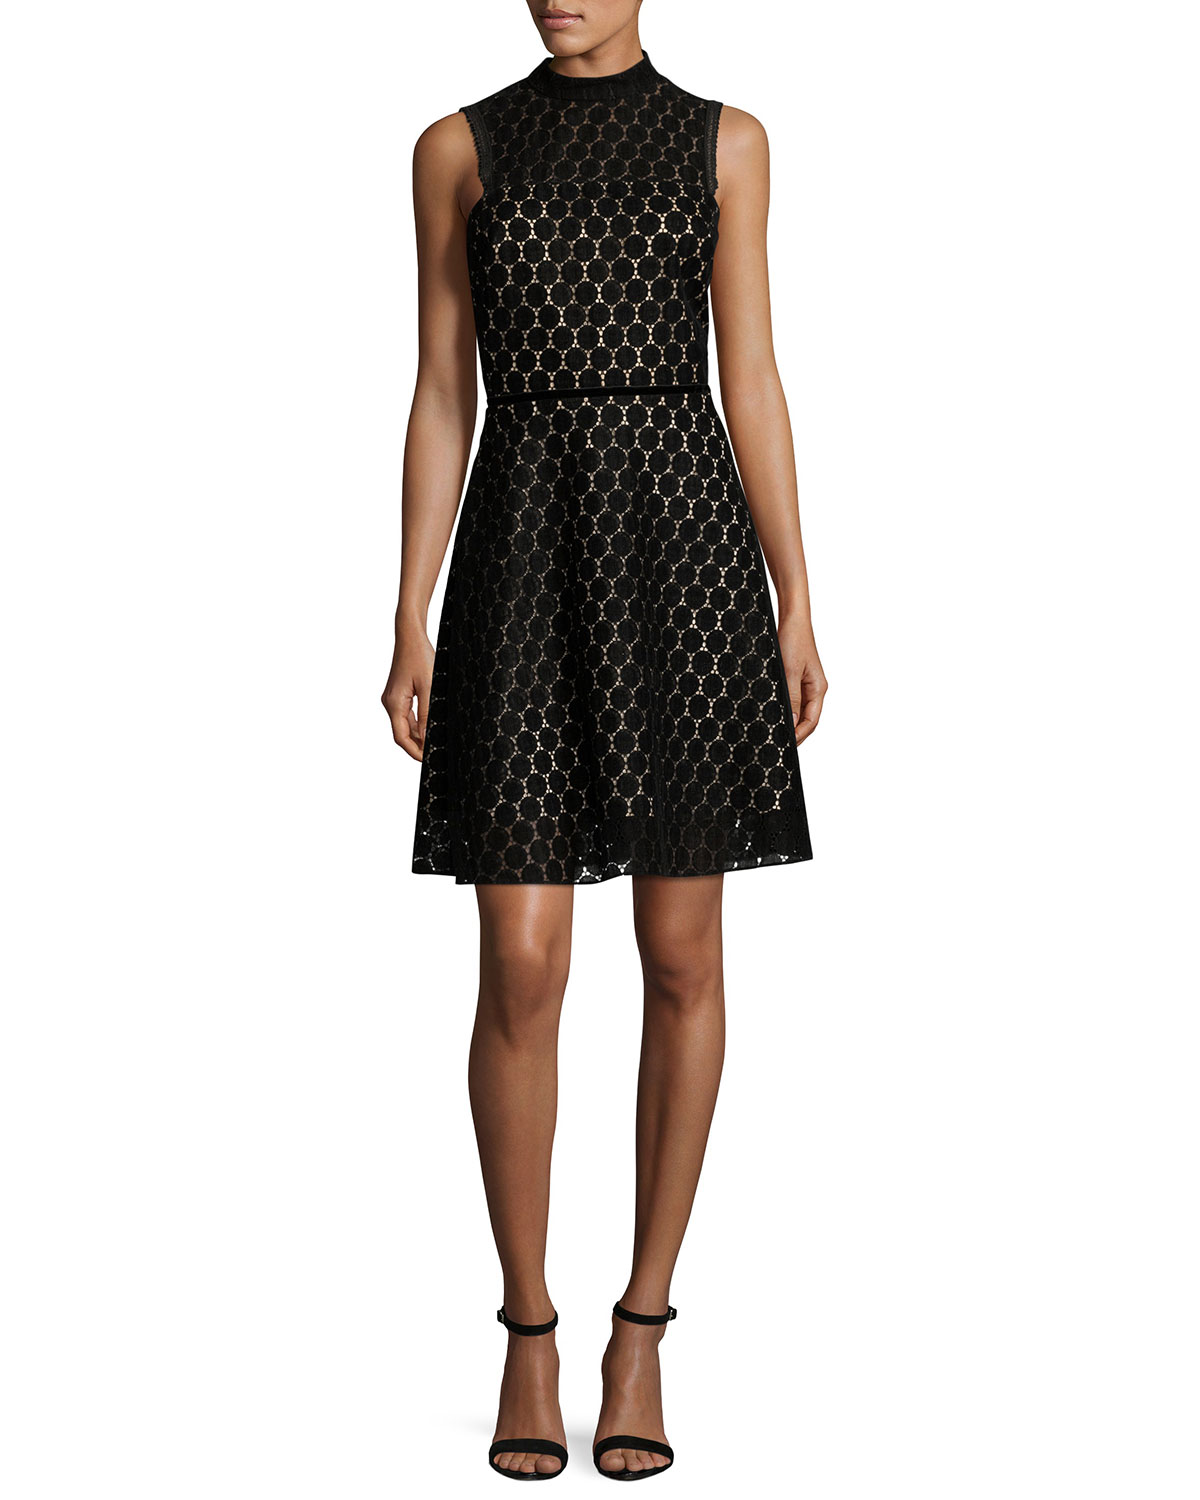 Sleeveless Velvet Polka-Dot Cocktail Dress, Black